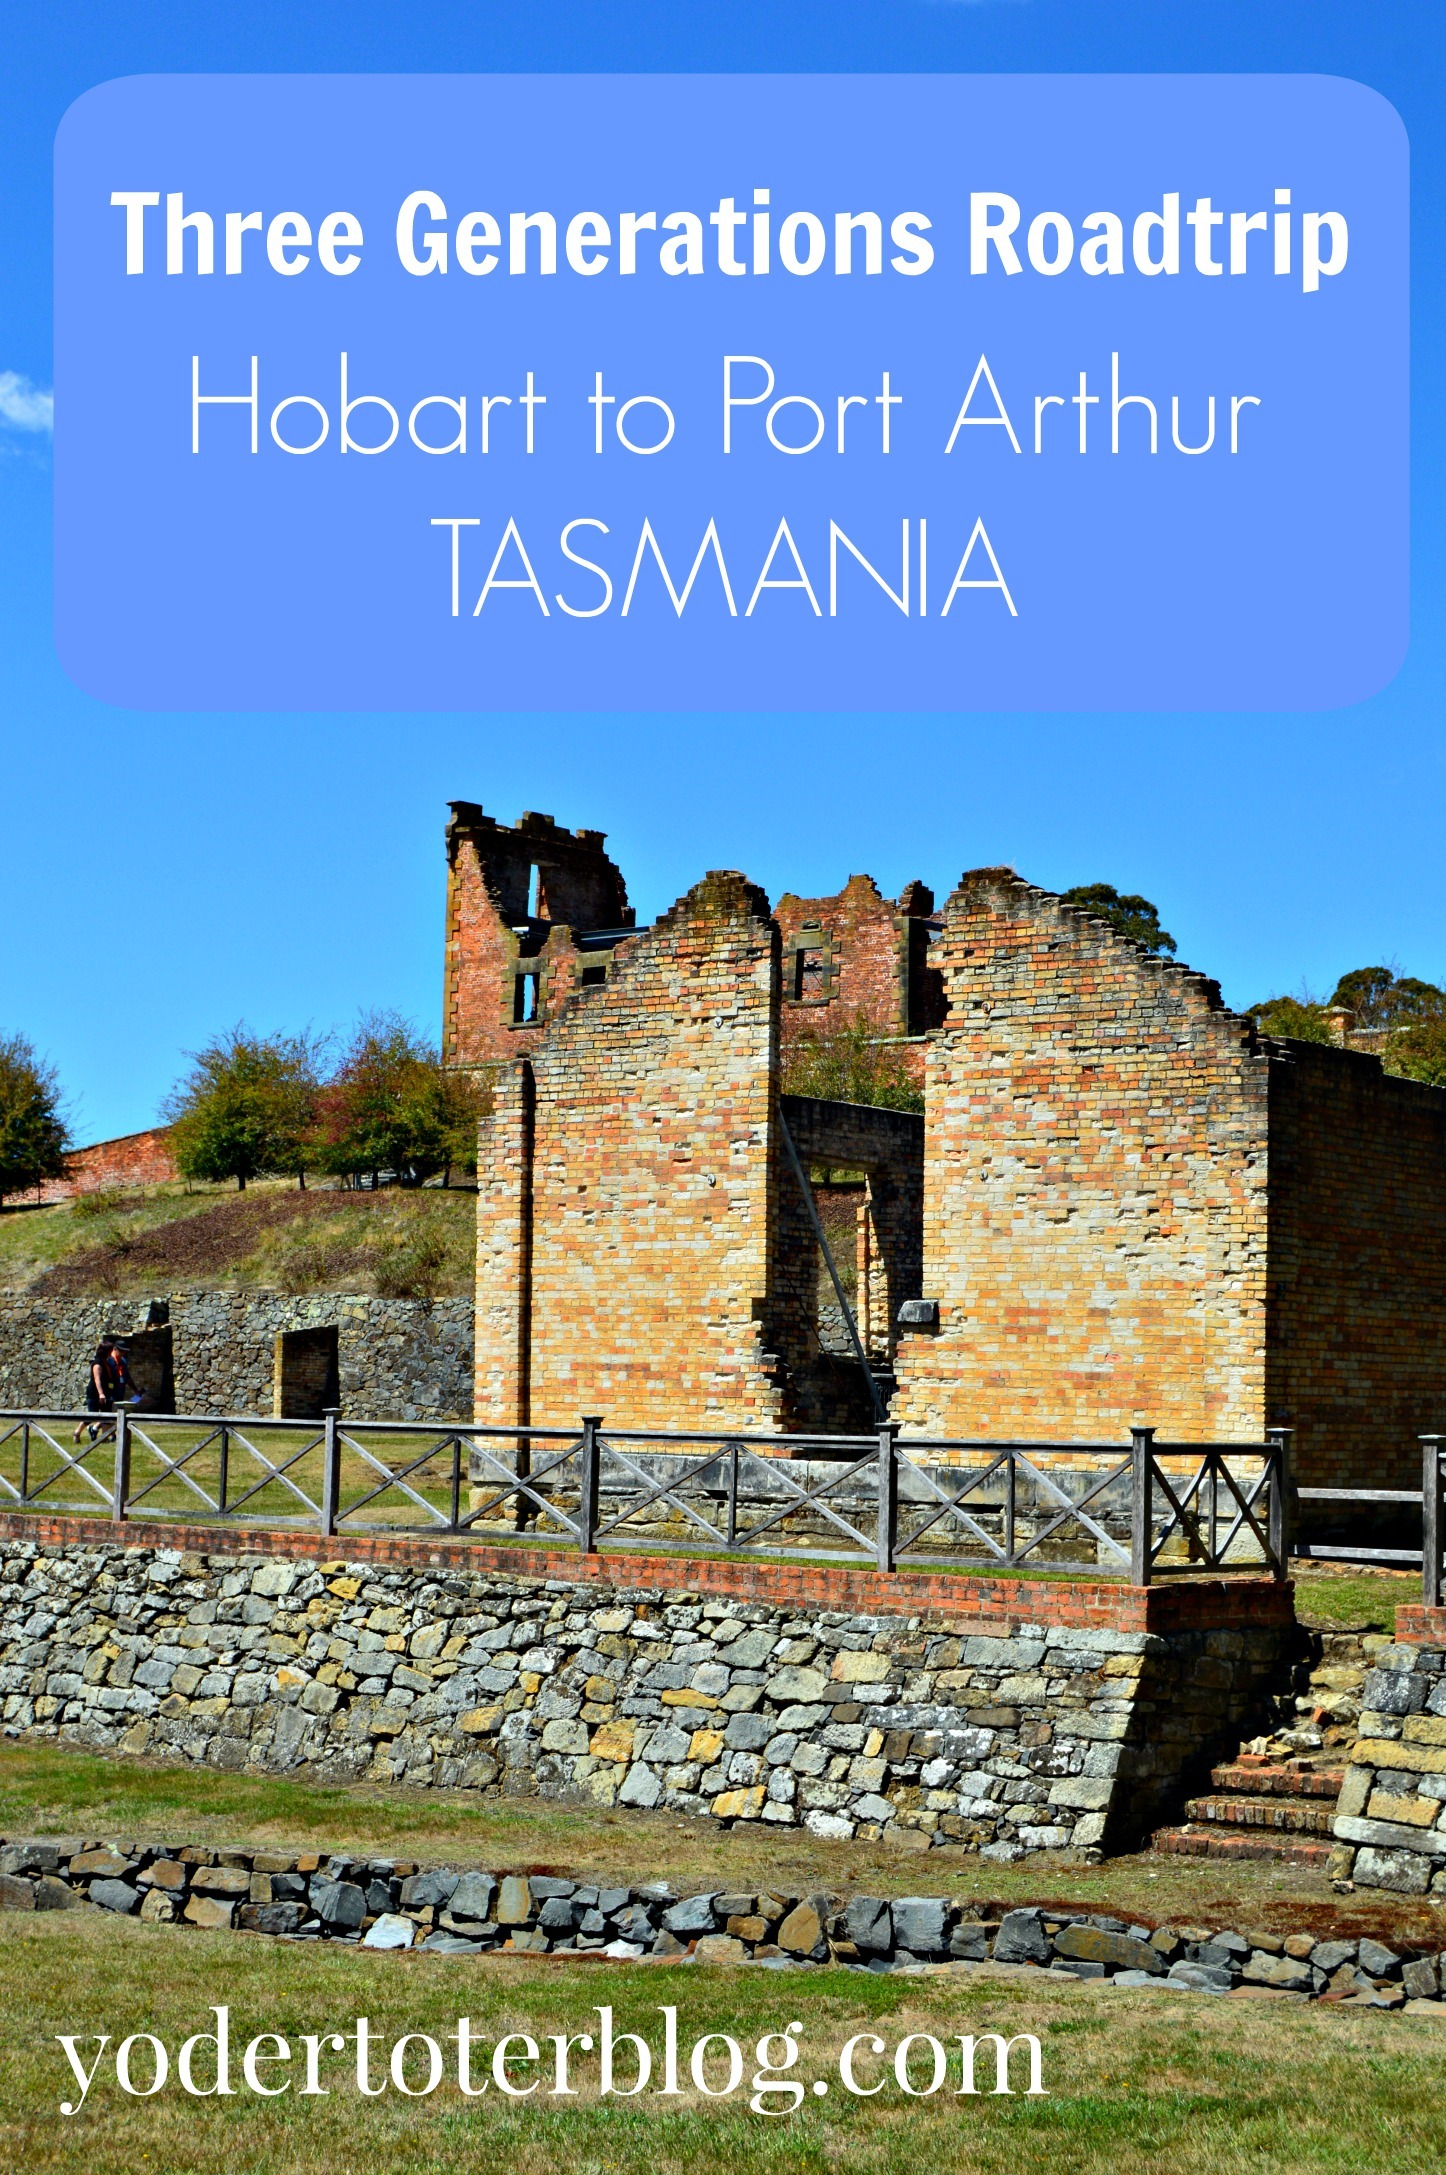 Port Arthur, Tasmania - Three Generations Road trip